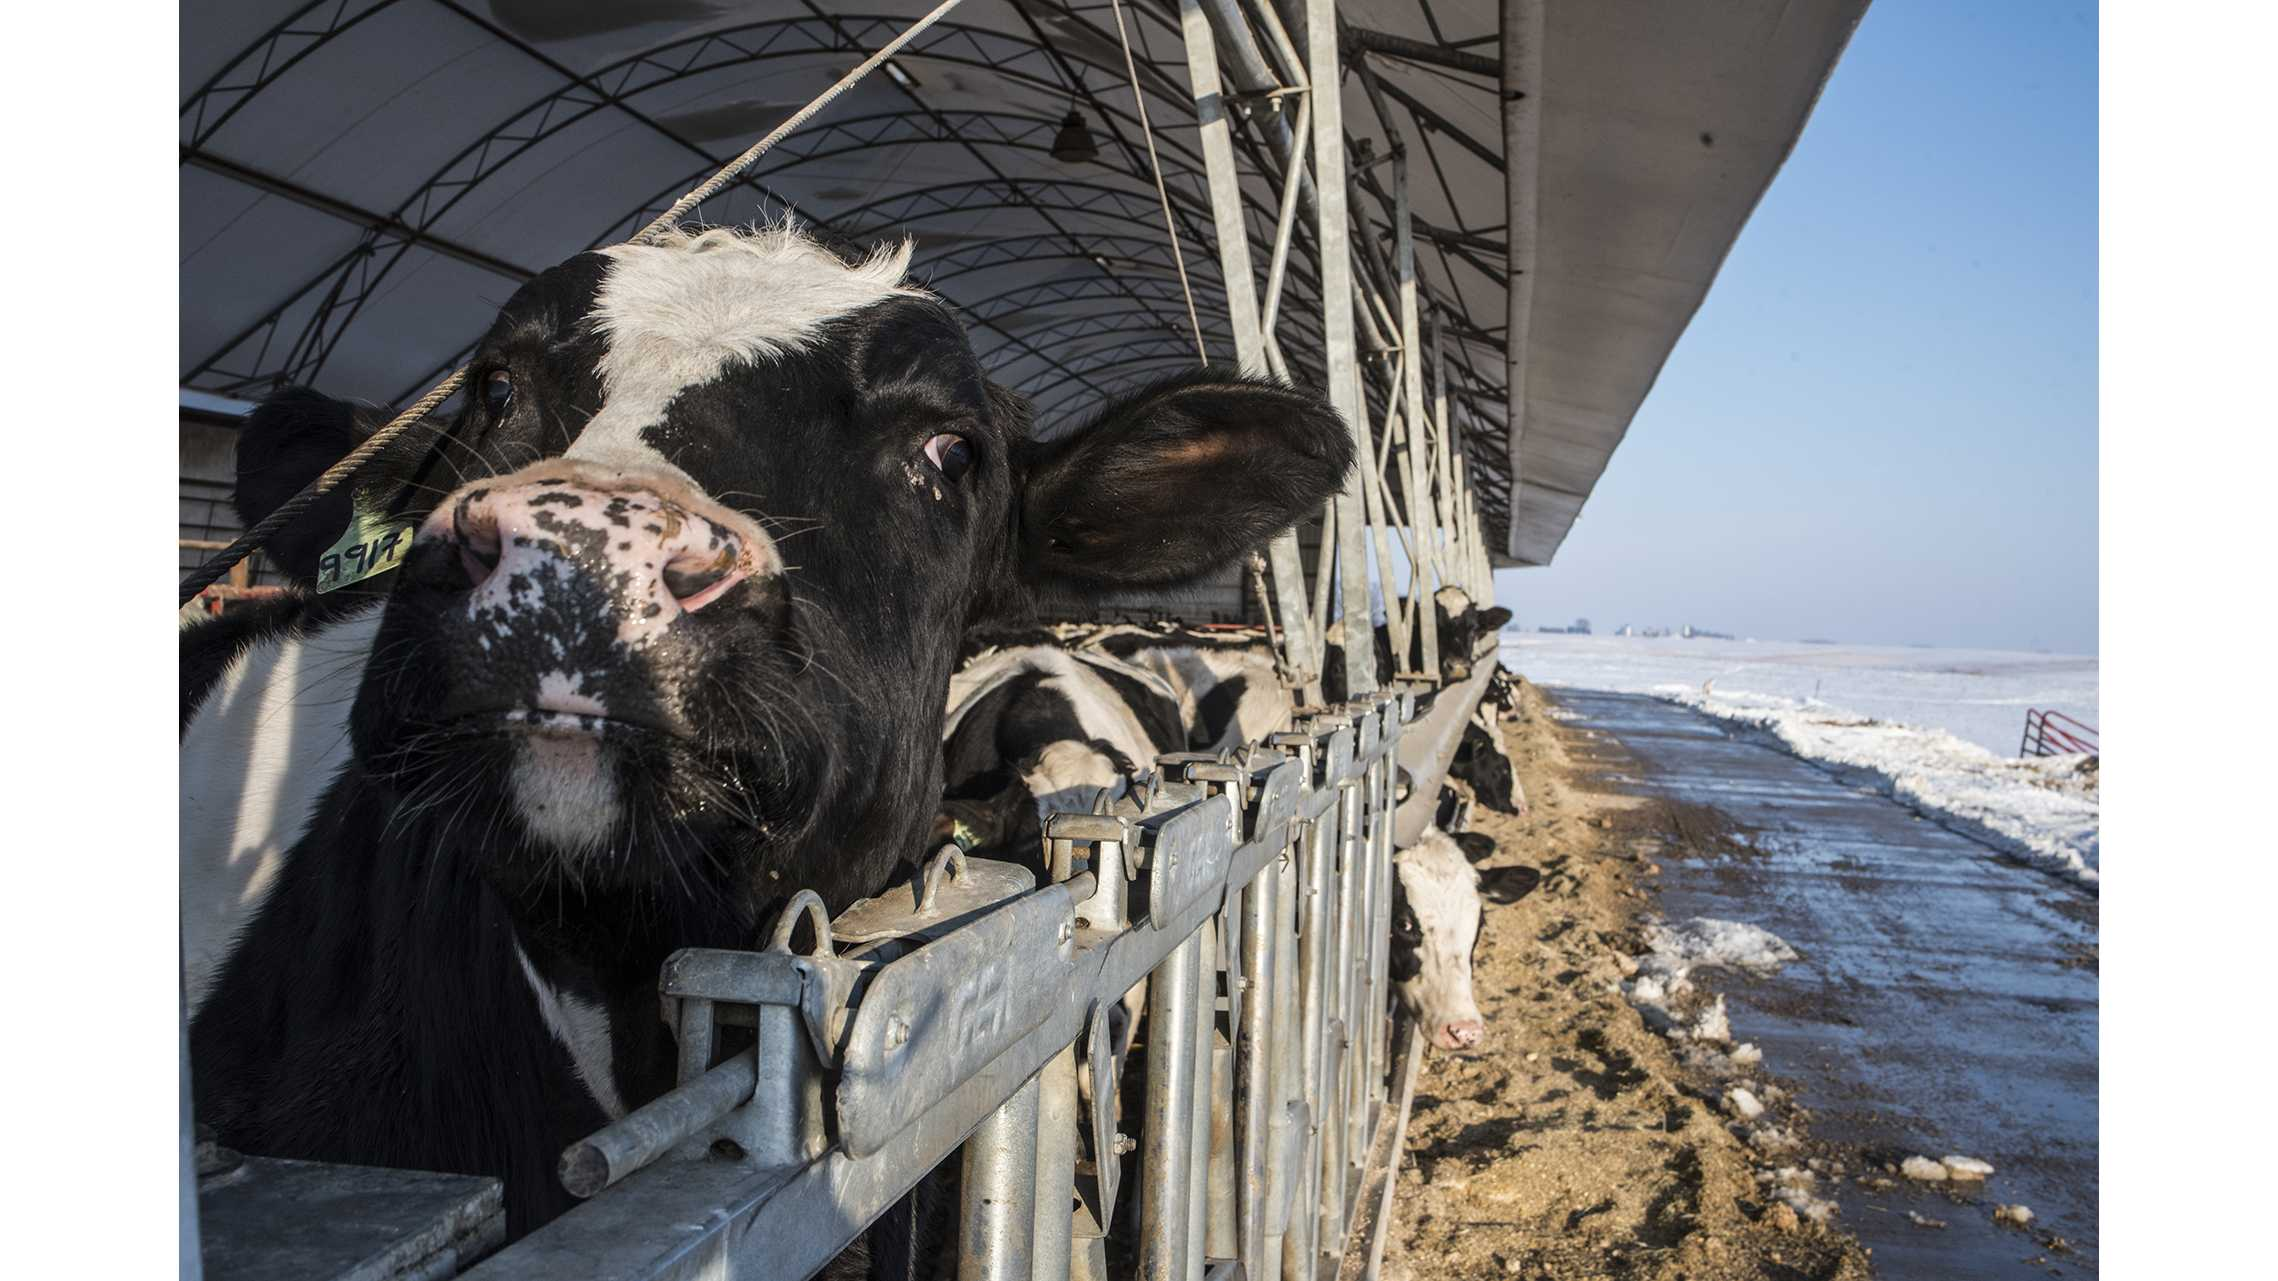 Cows are seen at the Blomme family farm in Ladora, Iowa on Tuesday, Feb. 13, 2018. The farm, which produces corn, soybeans, pork, and beef, has been in the family for over 80 years. (Ben Allan Smith/The Daily Iowan)